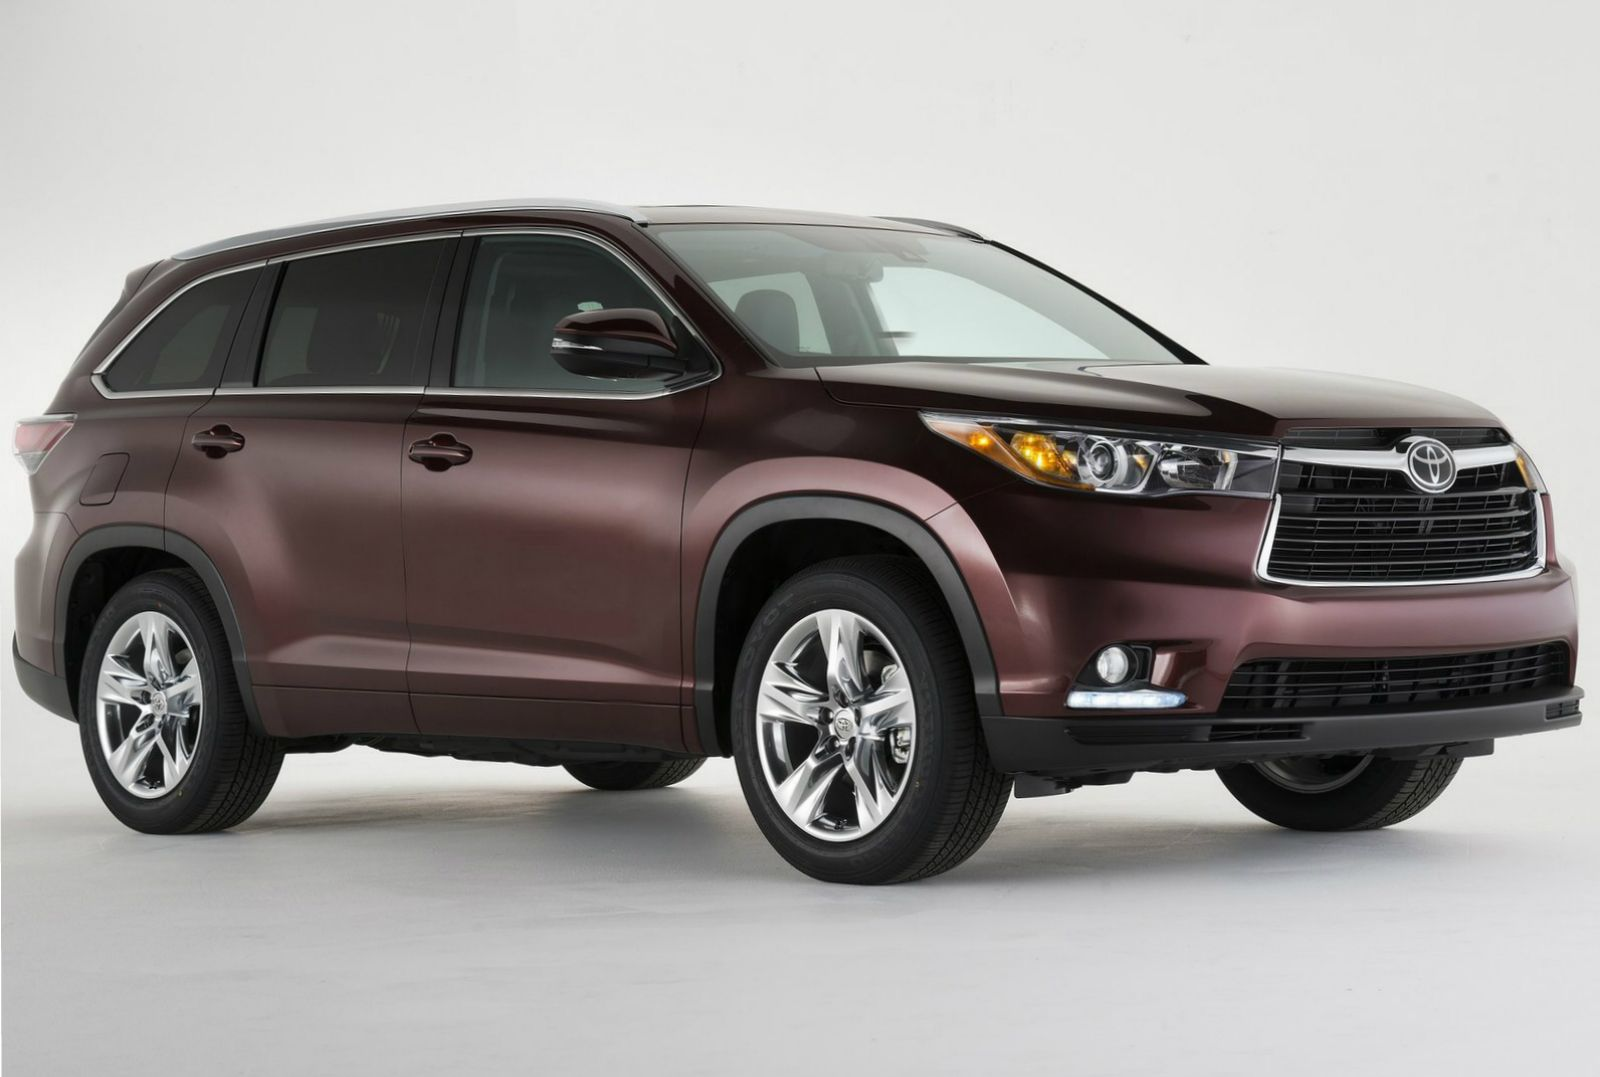 2015 Toyota Fortuner Review Review All Cars 2015 Toyota Car Rental Deals Car Rental